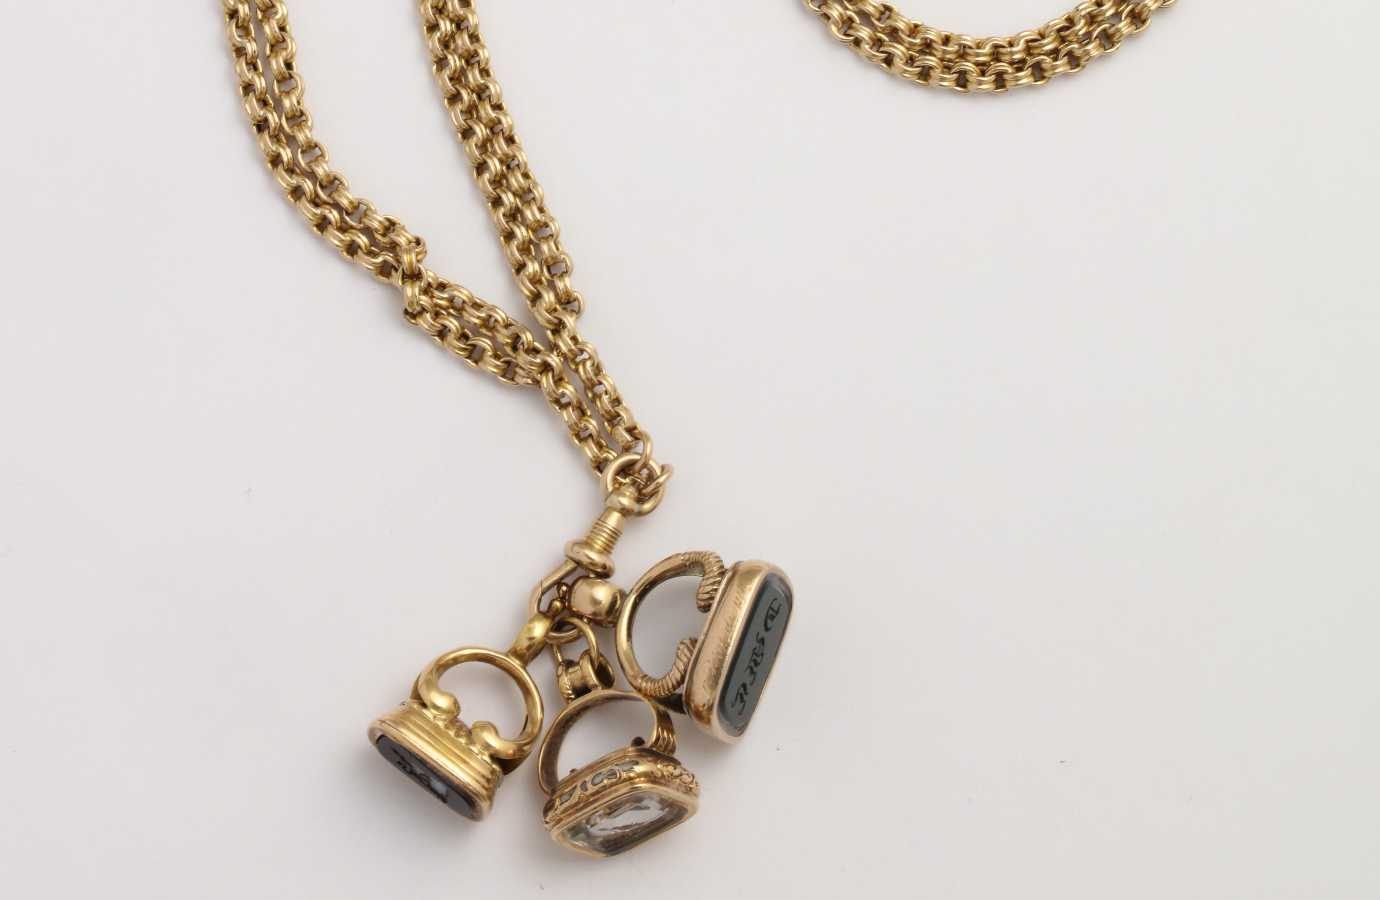 Antique Fob Chain Necklace With